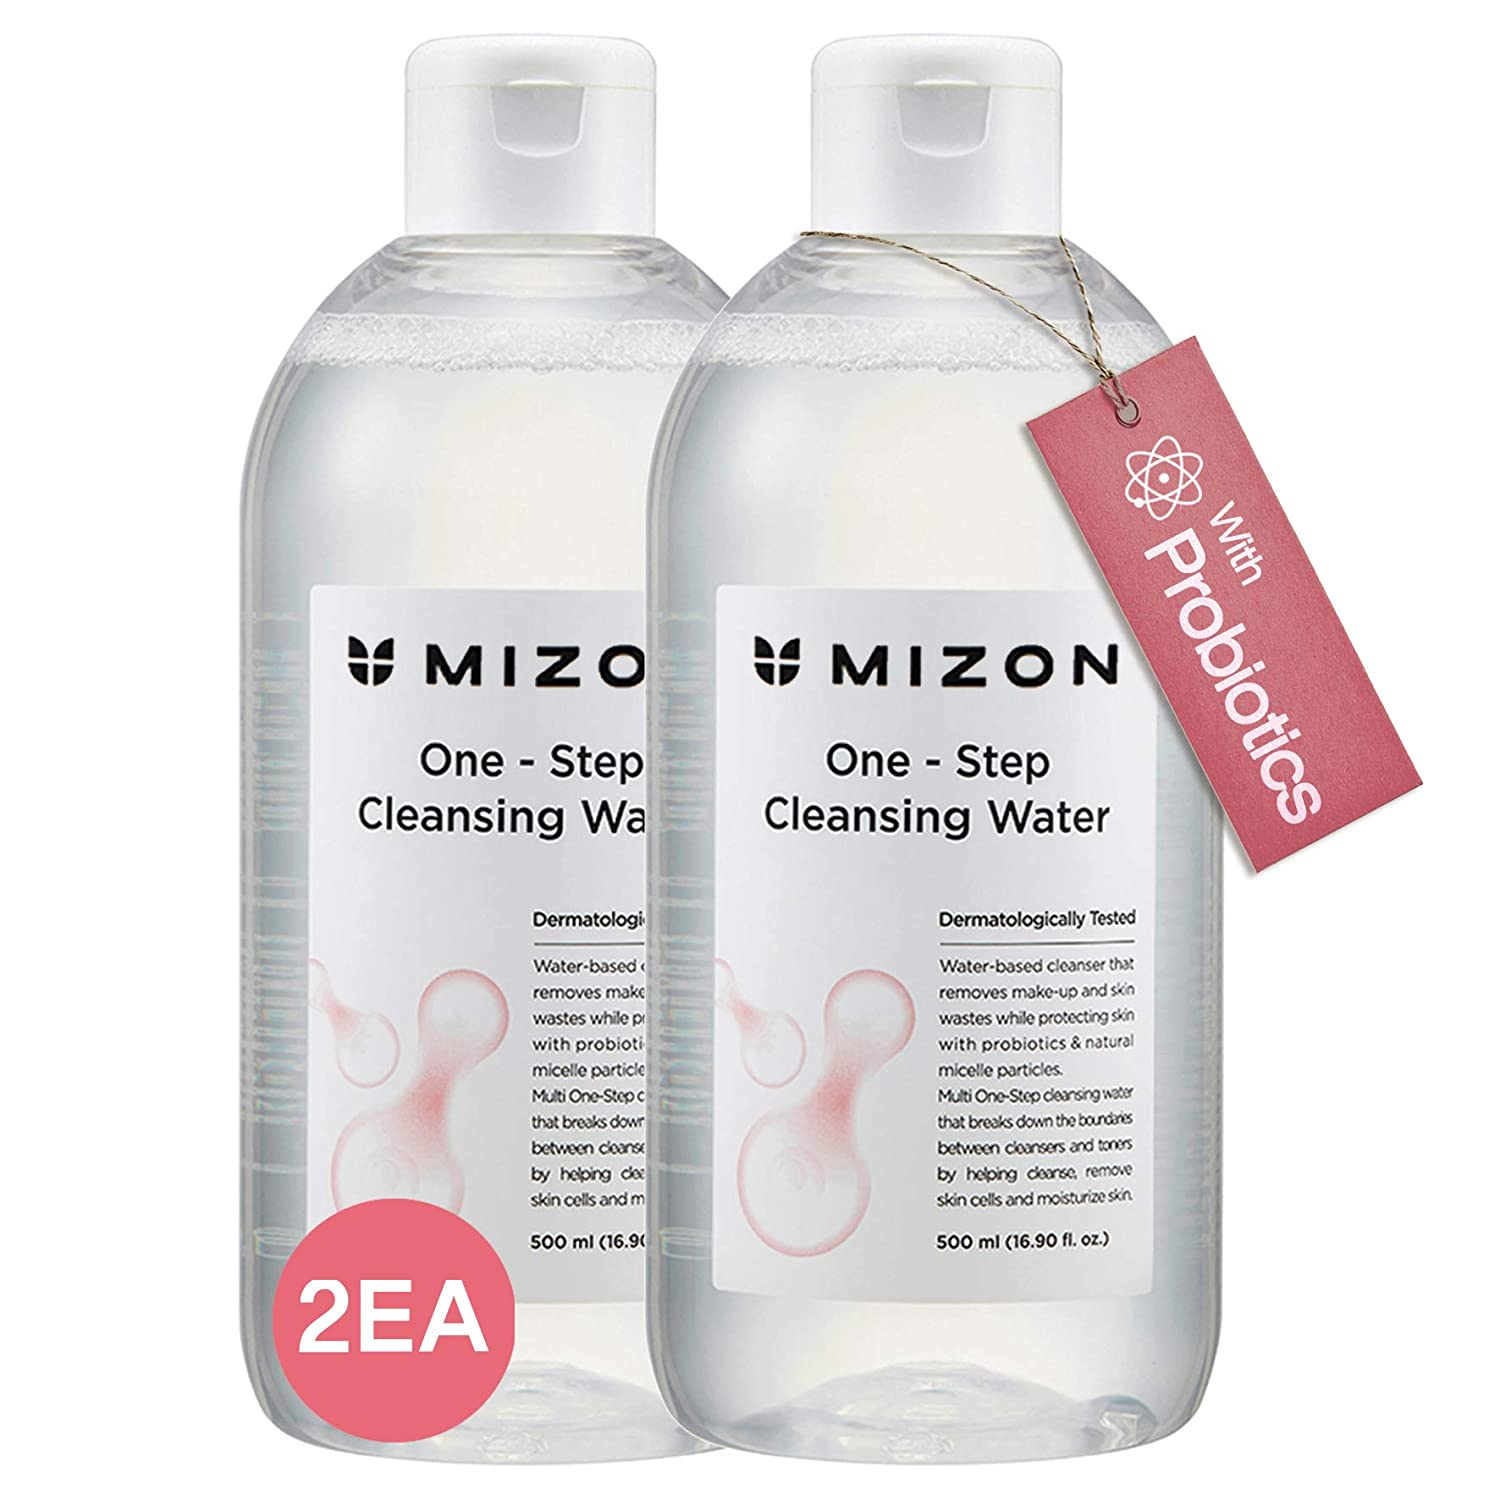 Top 10 Best Micellar Water In 2020 Review